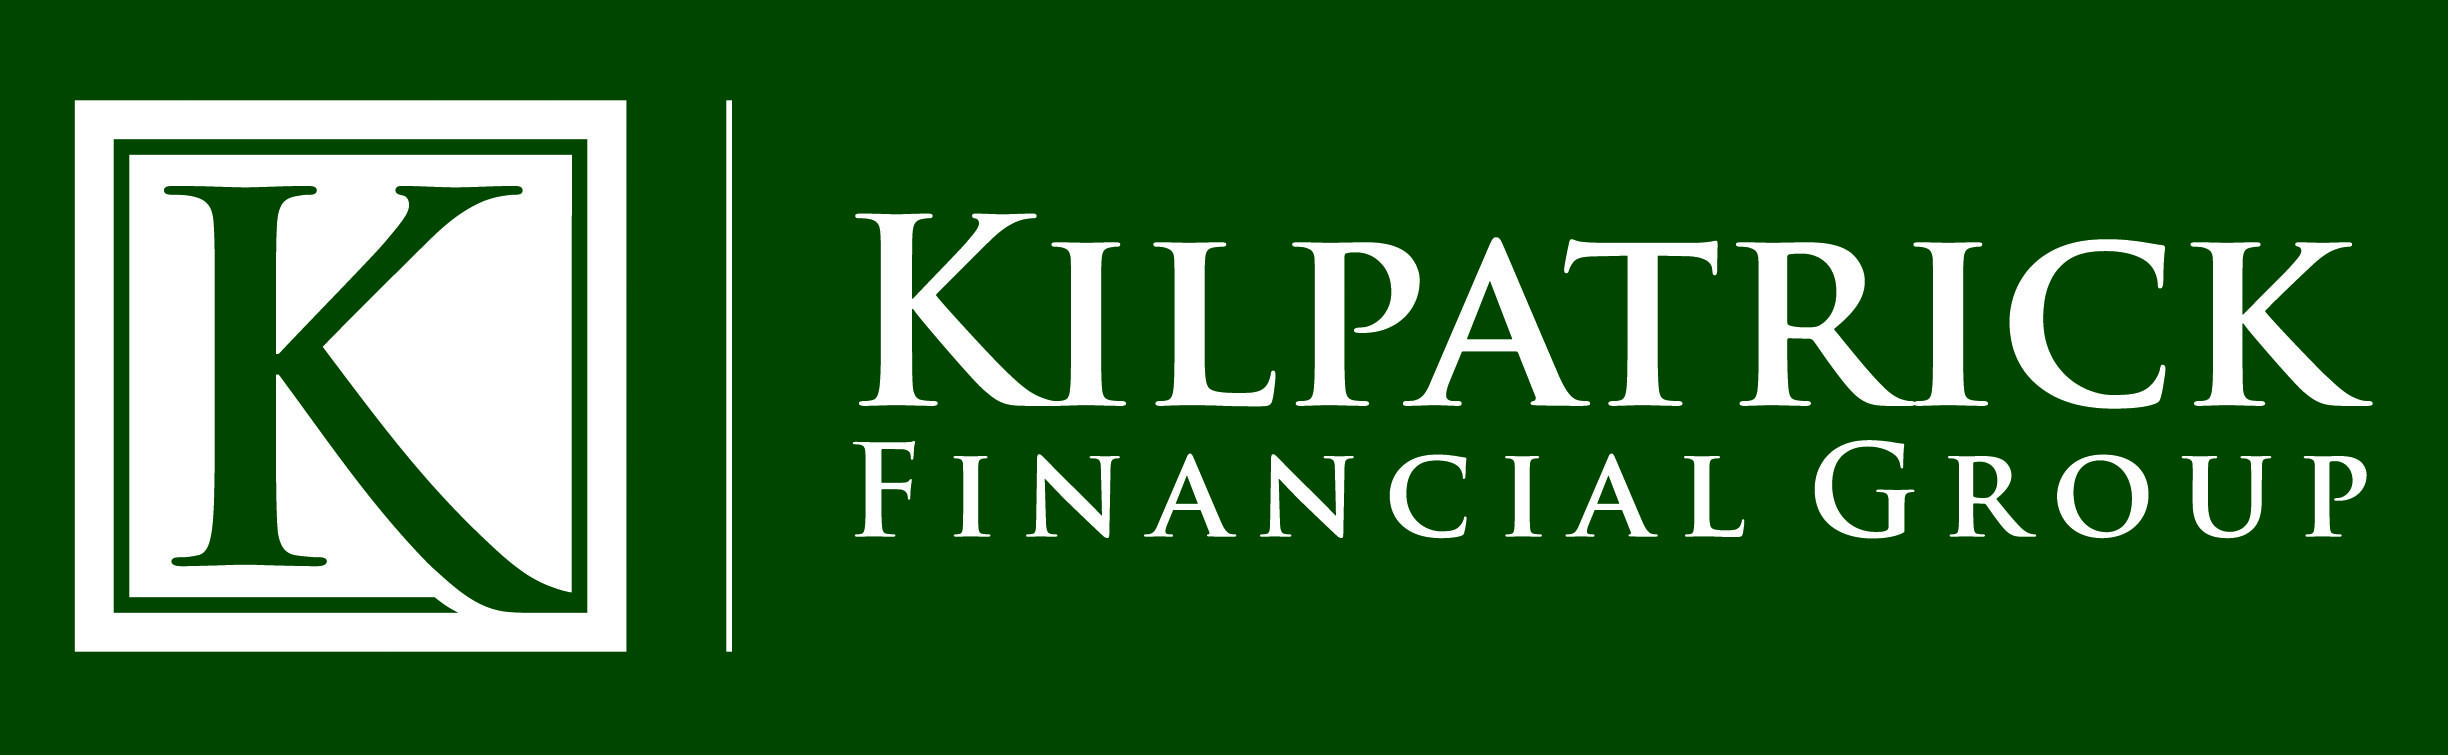 Logo for Kilpatrick Financial Group